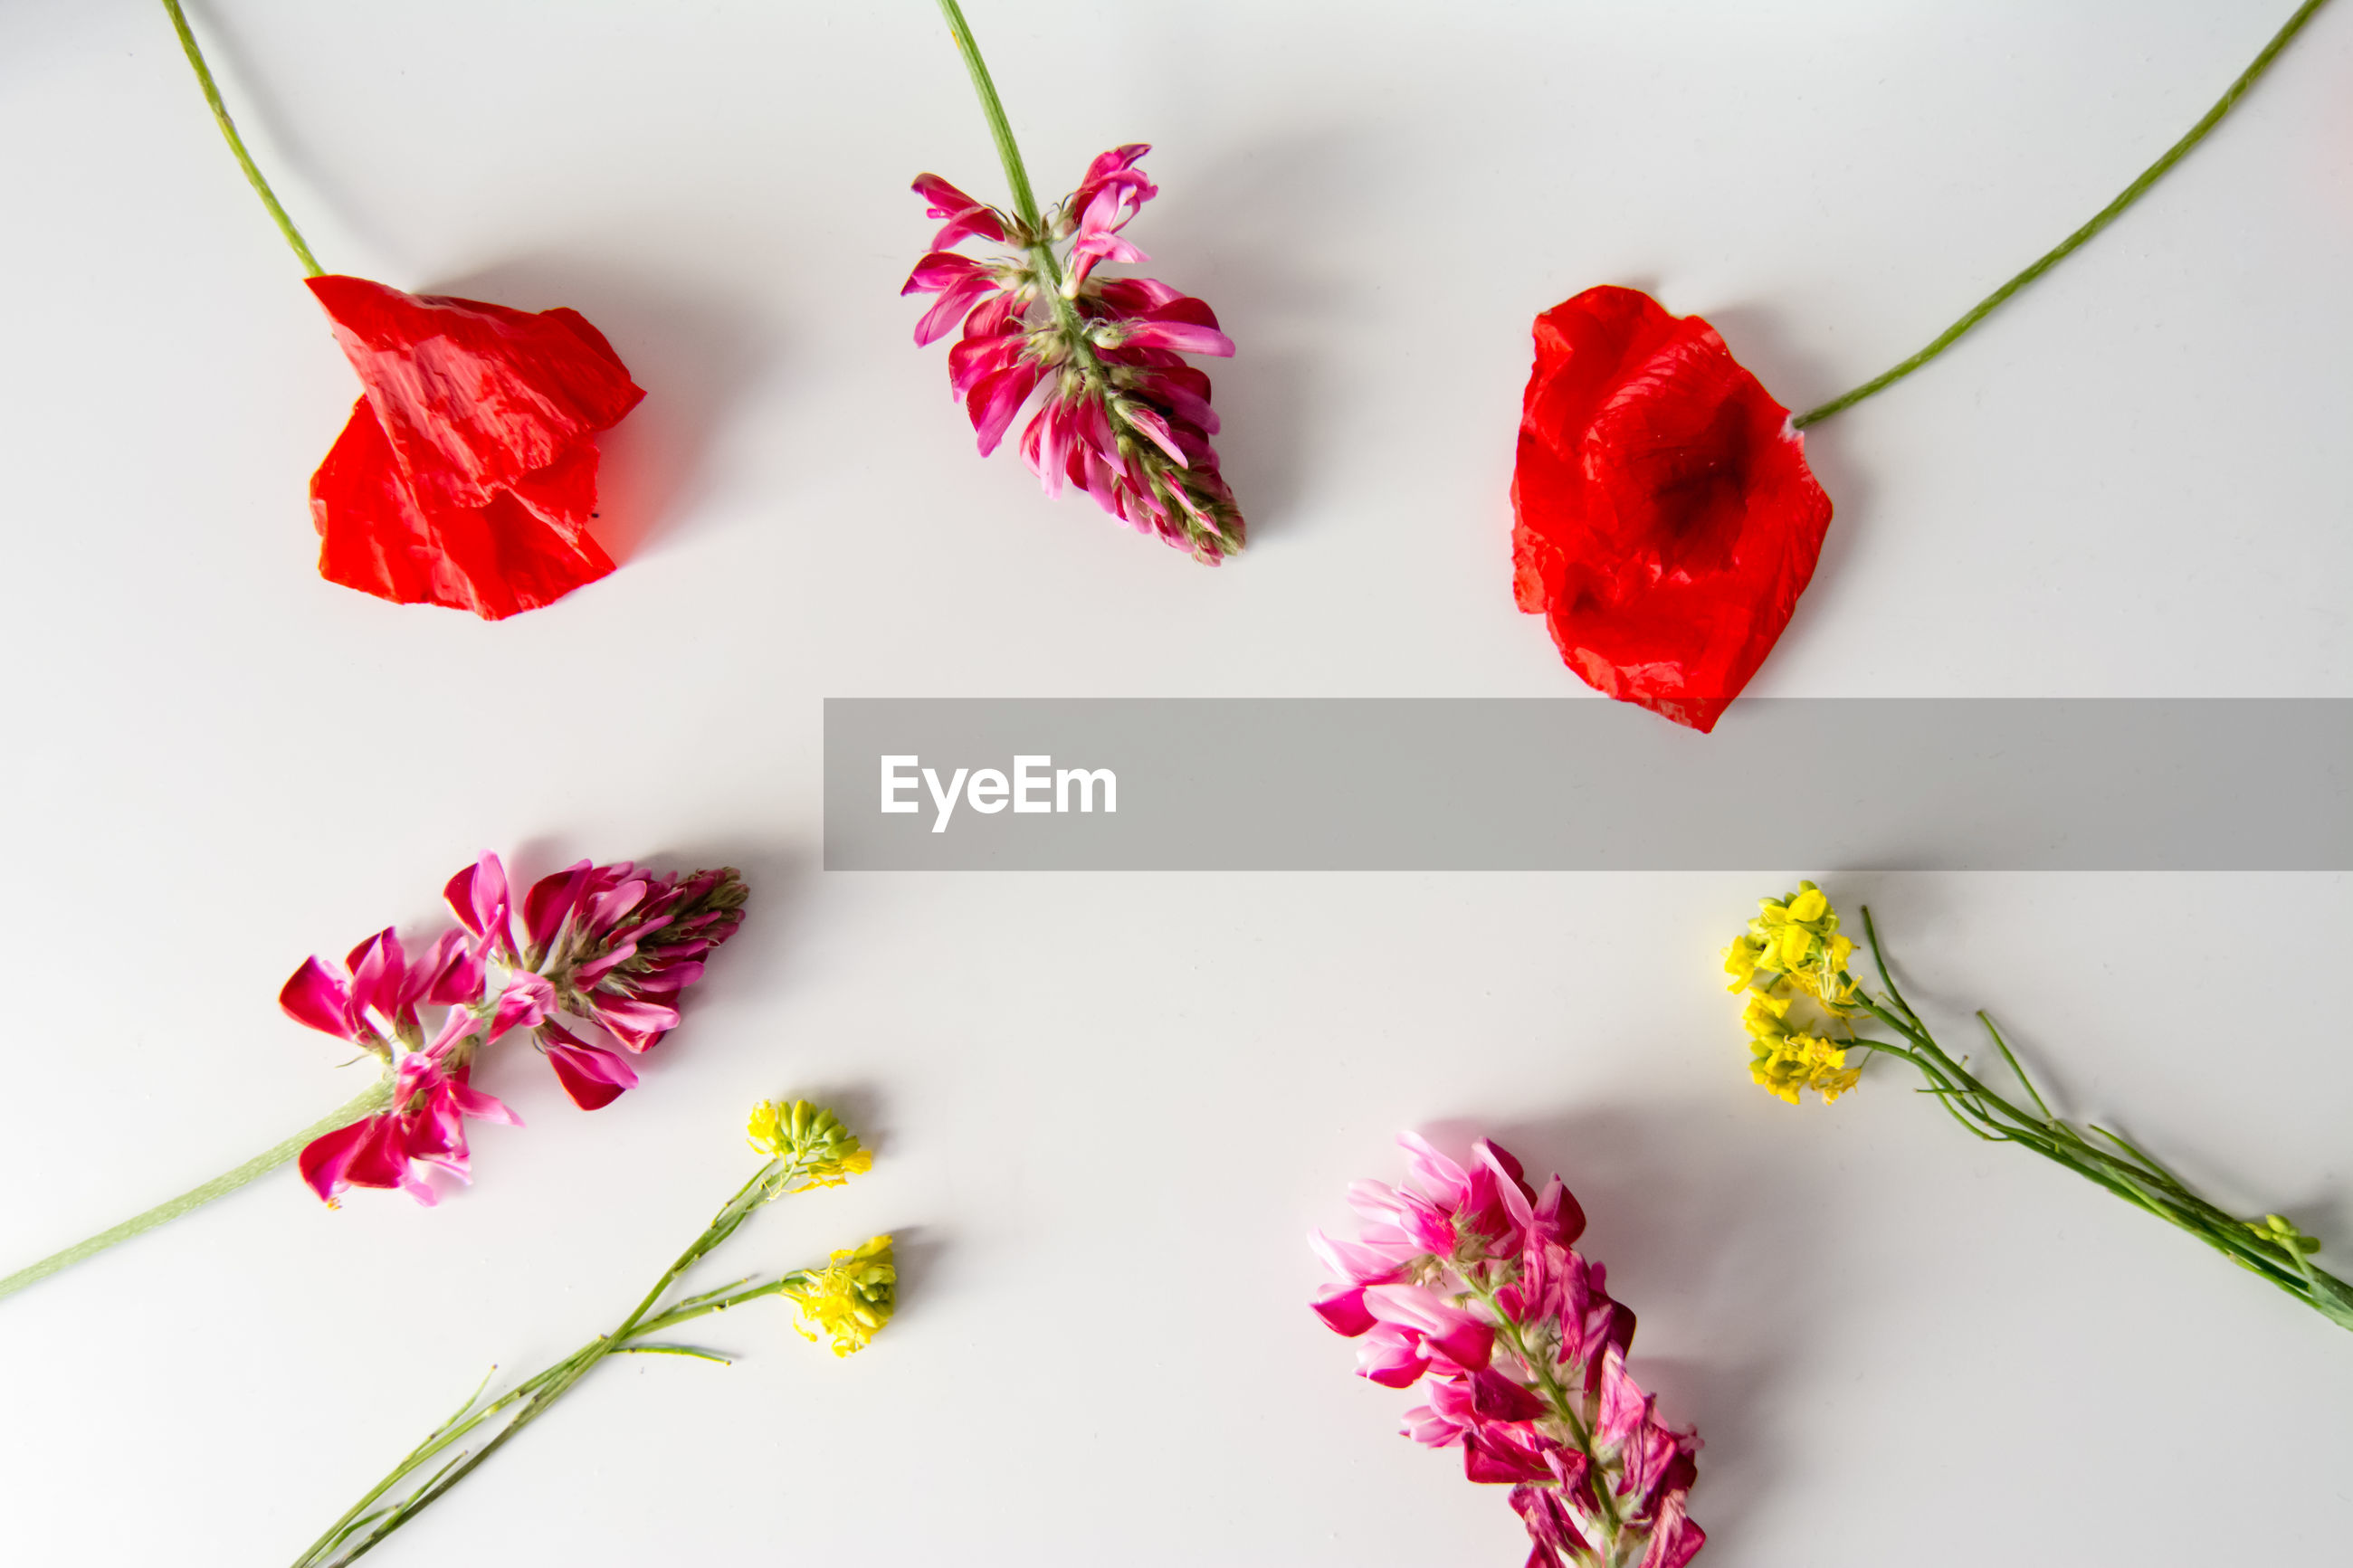 High angle view of flowers on white background